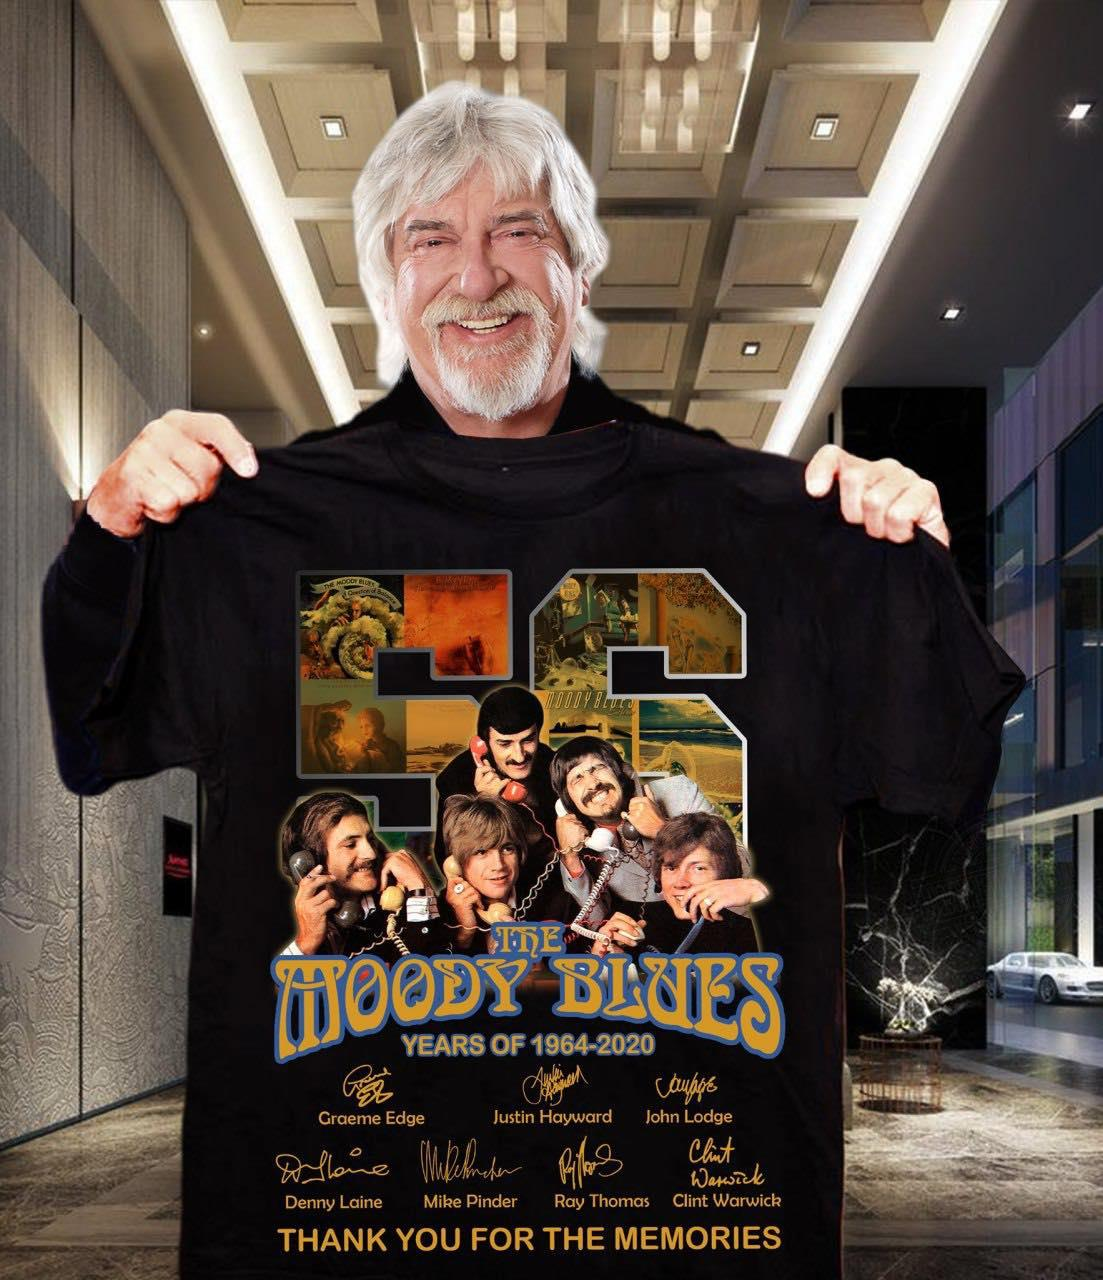 56 Years Of The MoodyBlues Signature And Thank You For The Memories Shirt